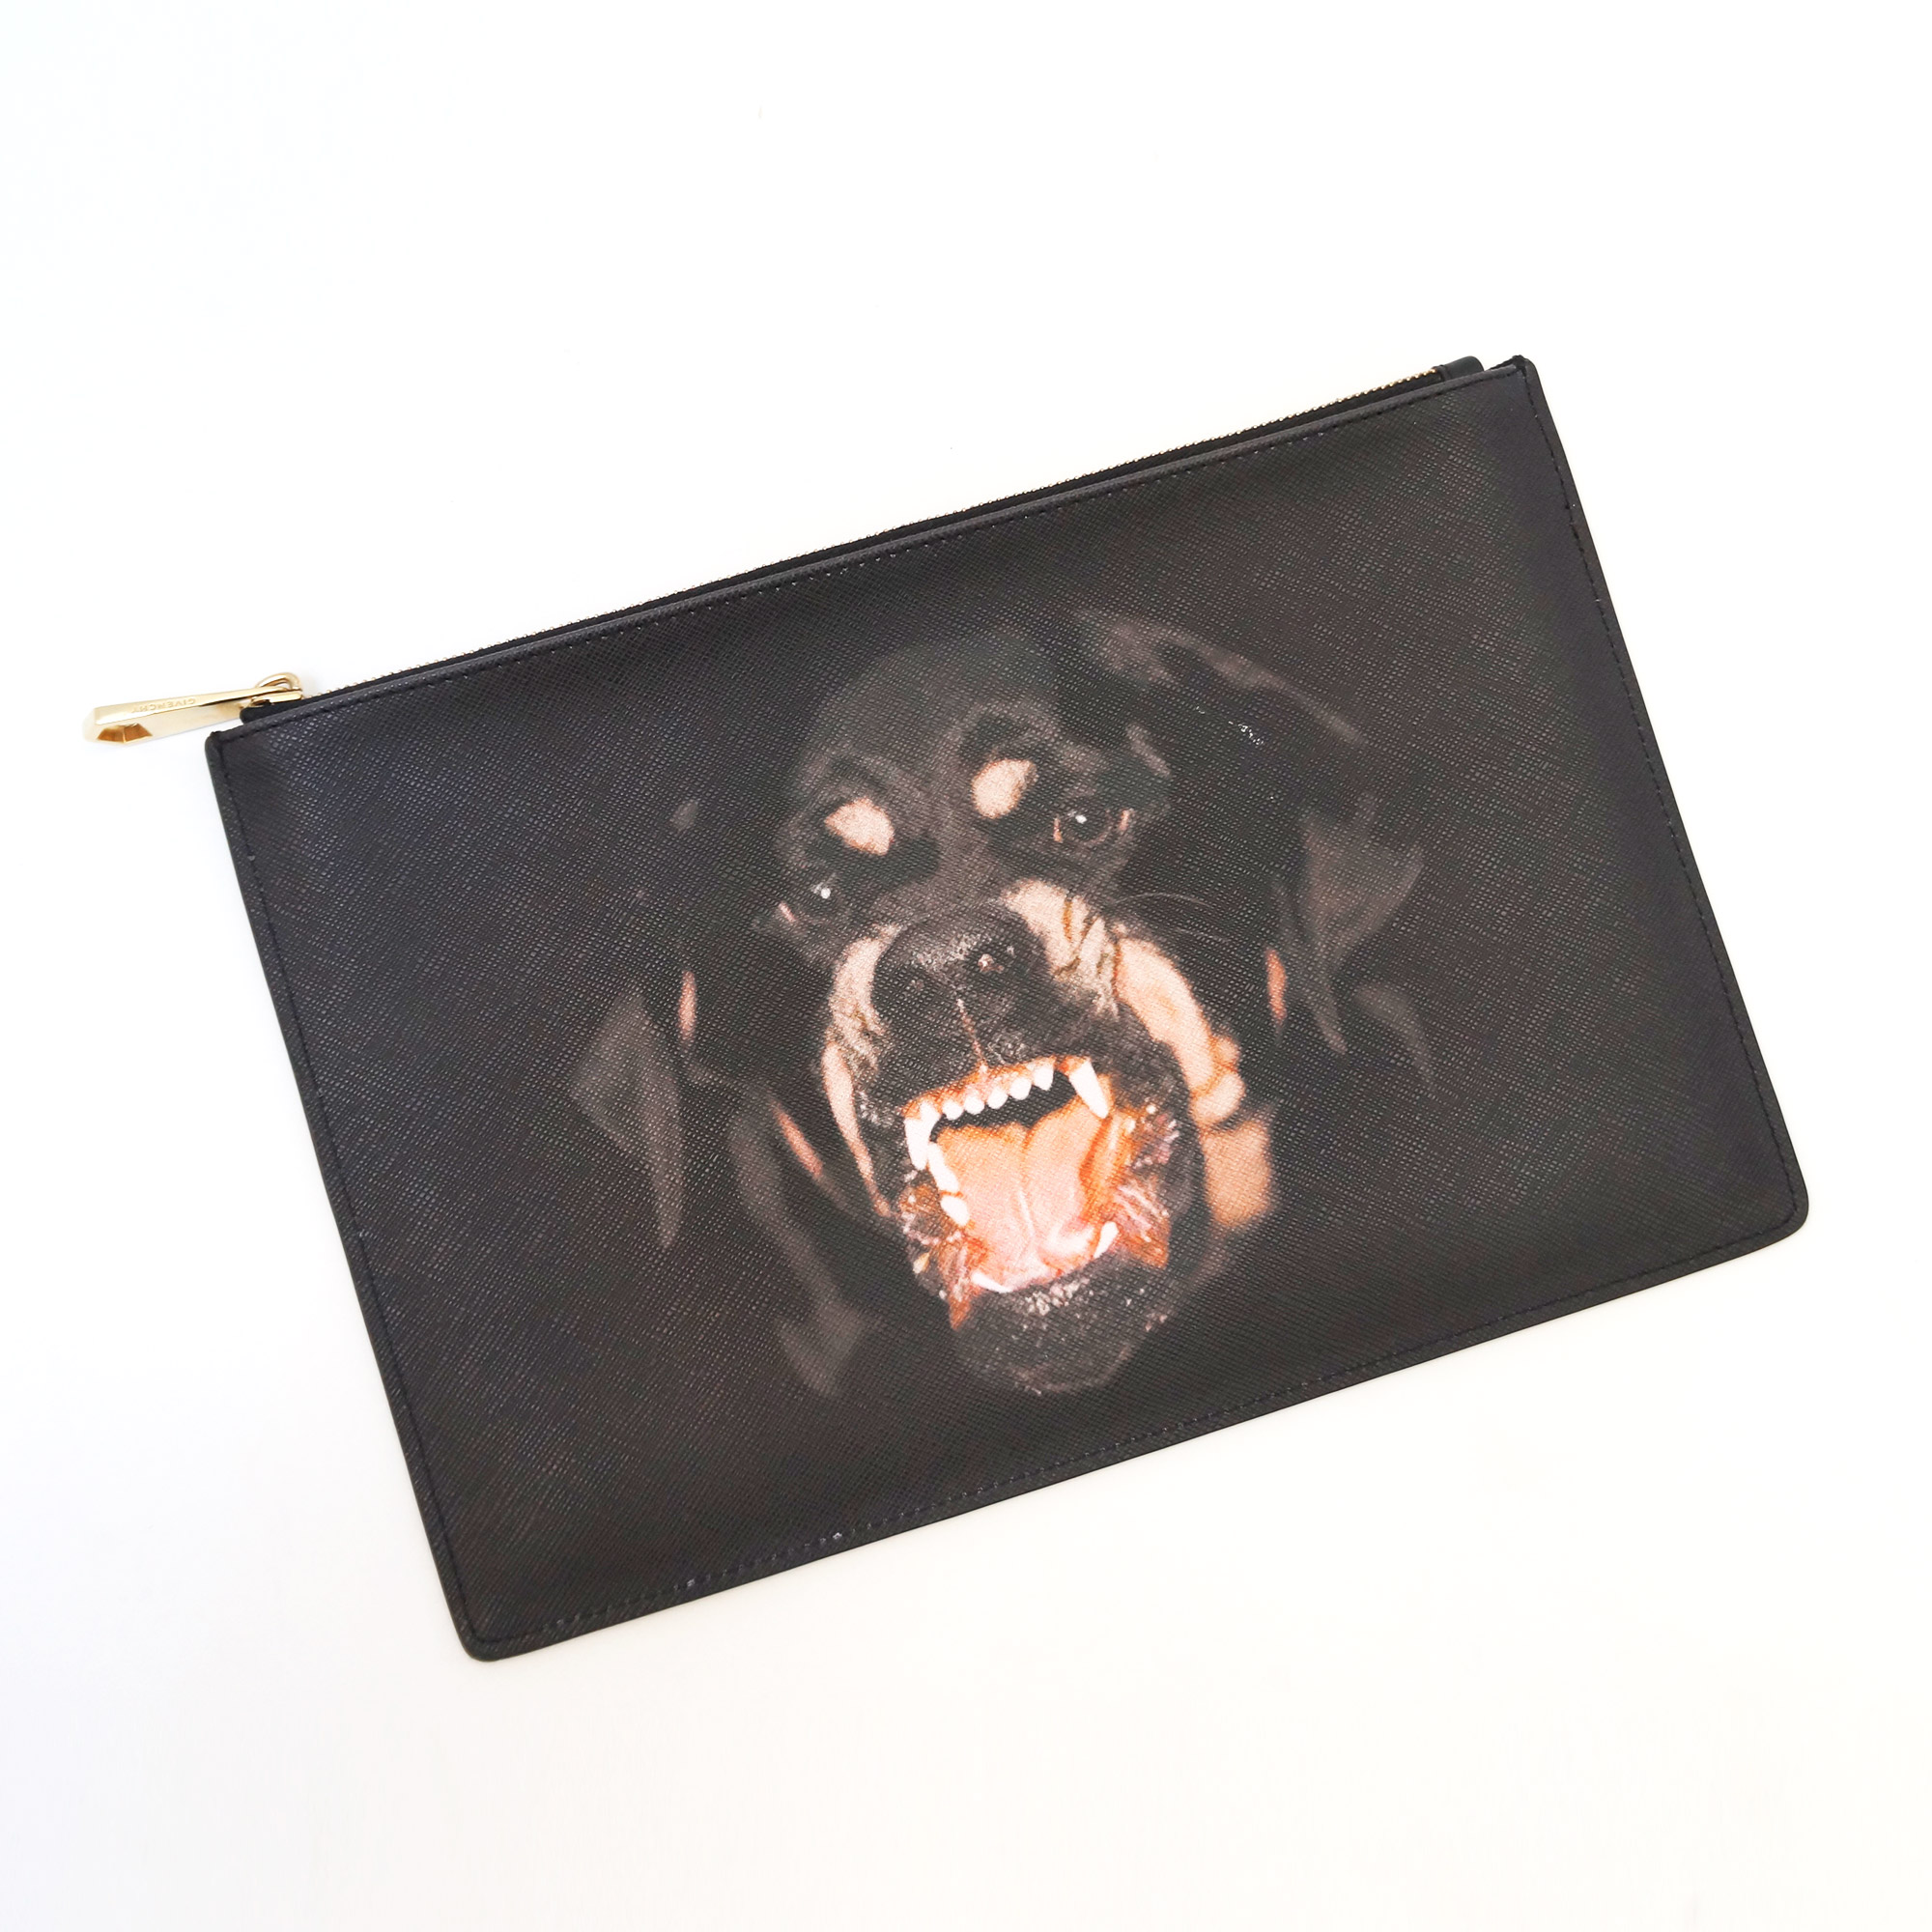 Givenchy Black Coated Canvas Rottweiler Clutch